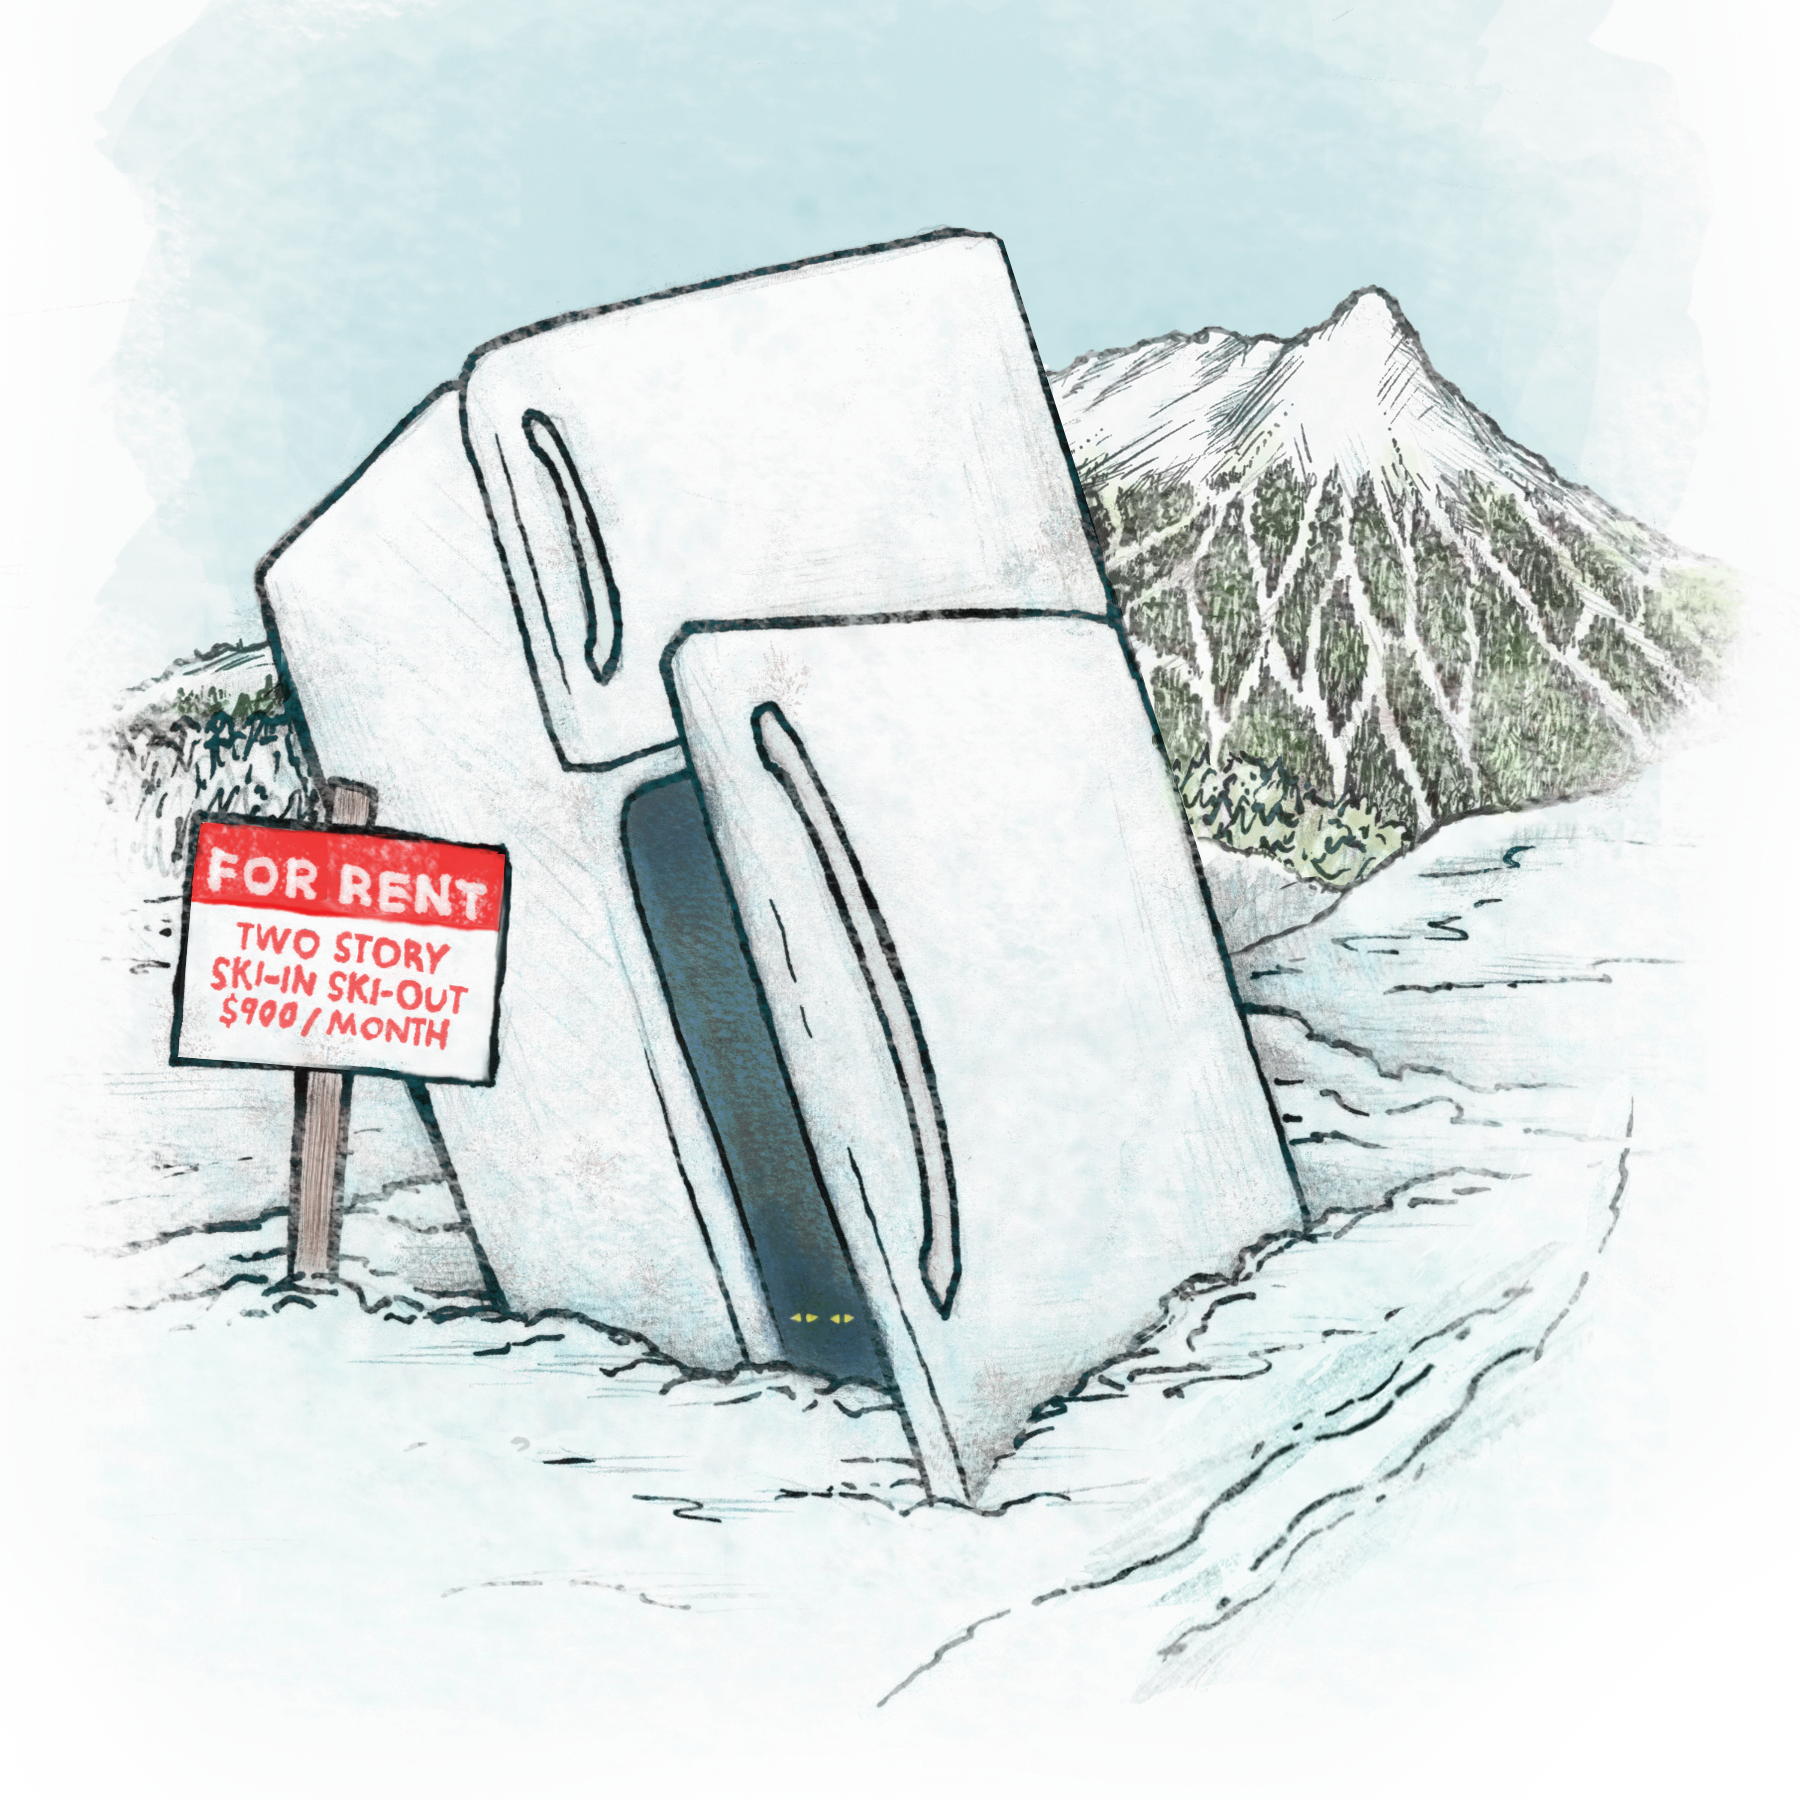 Colorado summit paradise leased fridge illustration winter 2016 tli5d9